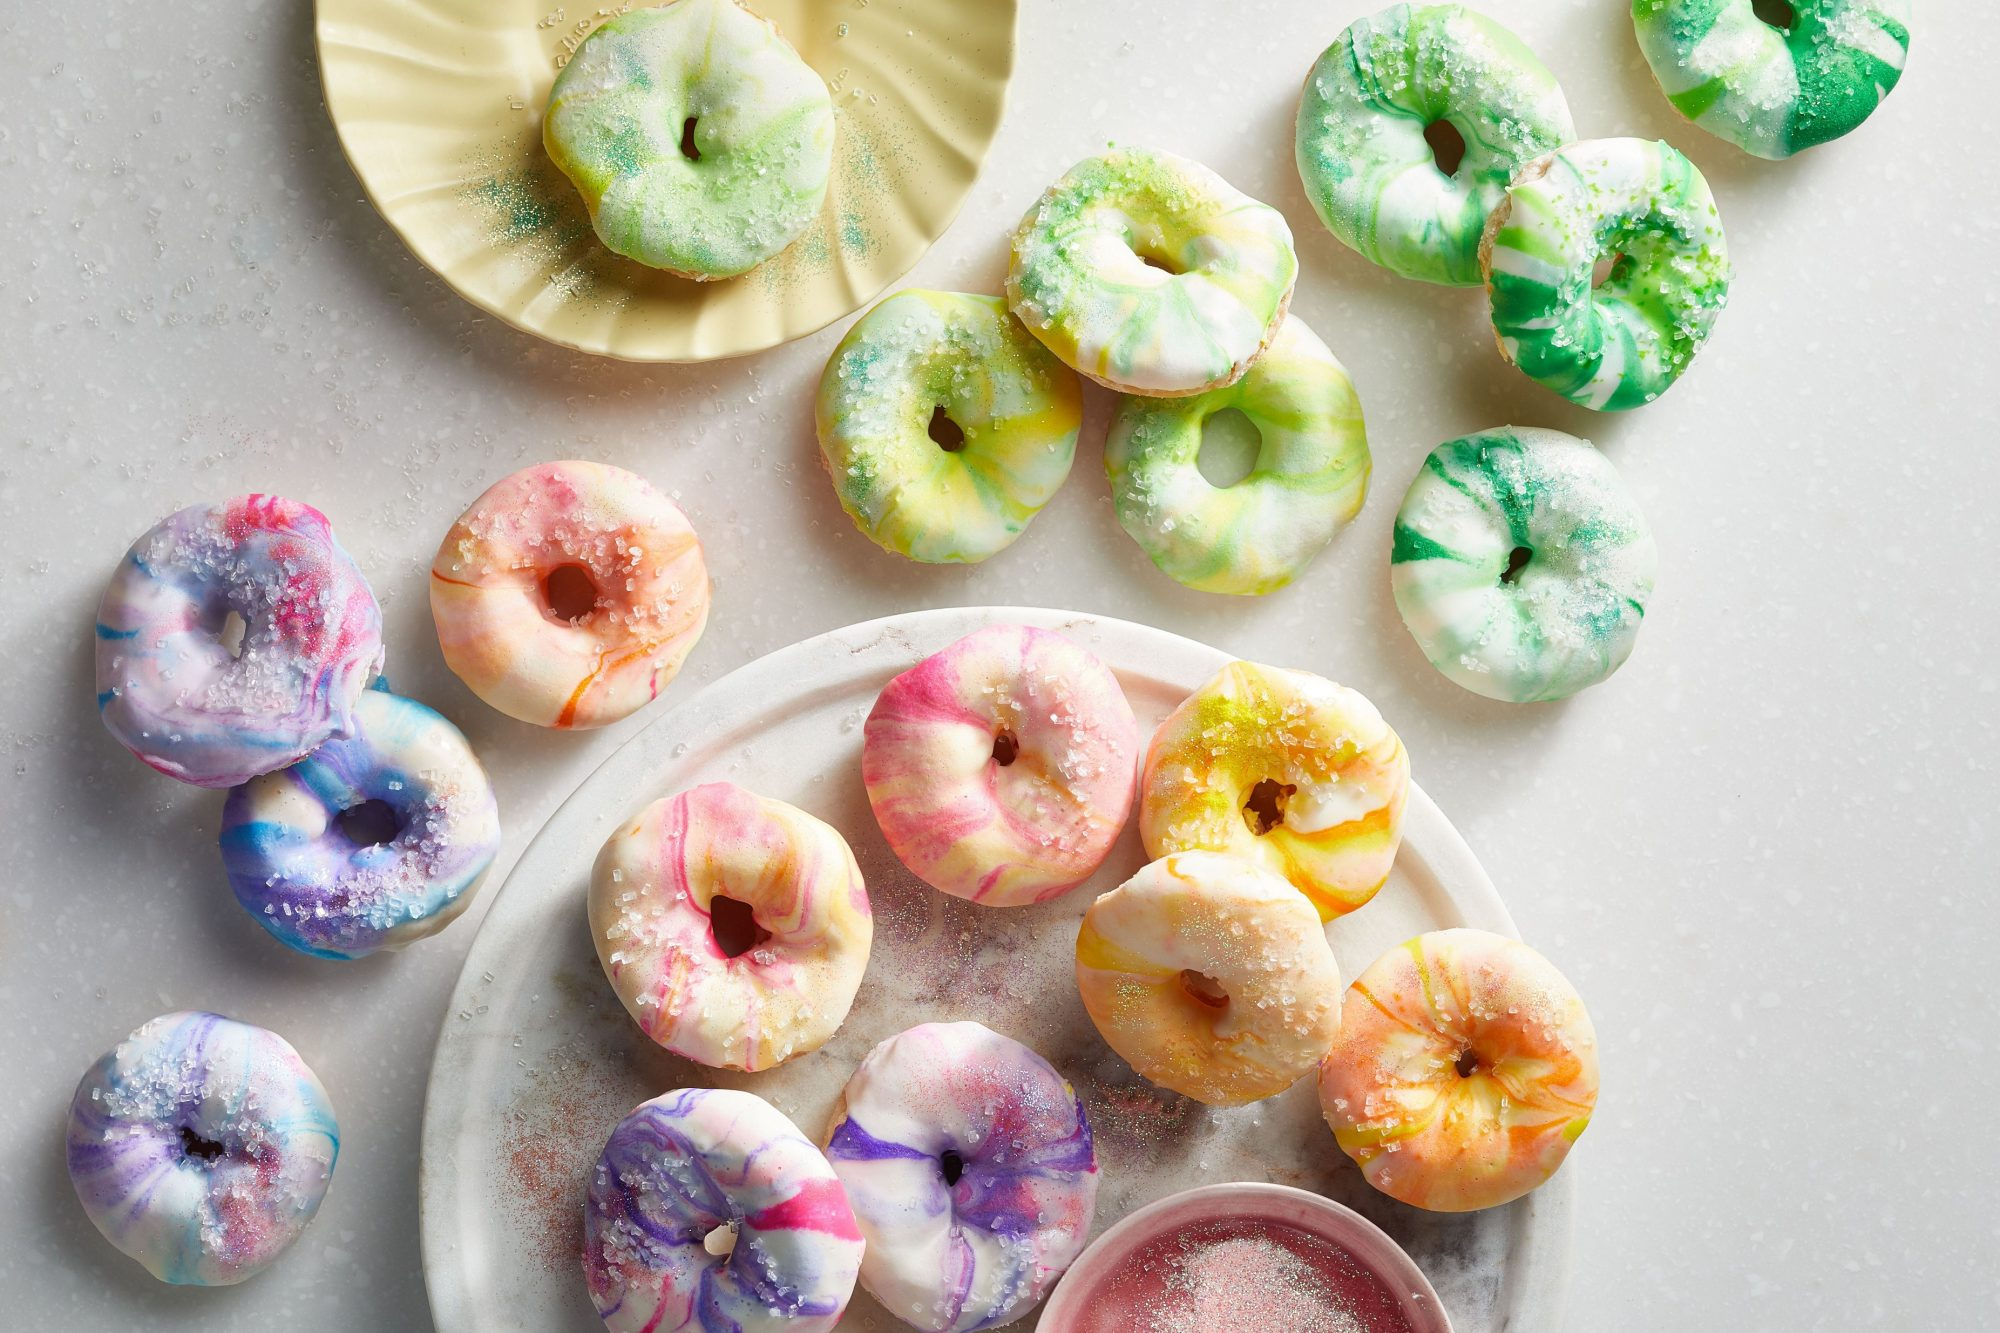 mini doughnuts dip-dyed in shades of blue, red, pink, yellow, orange, and green